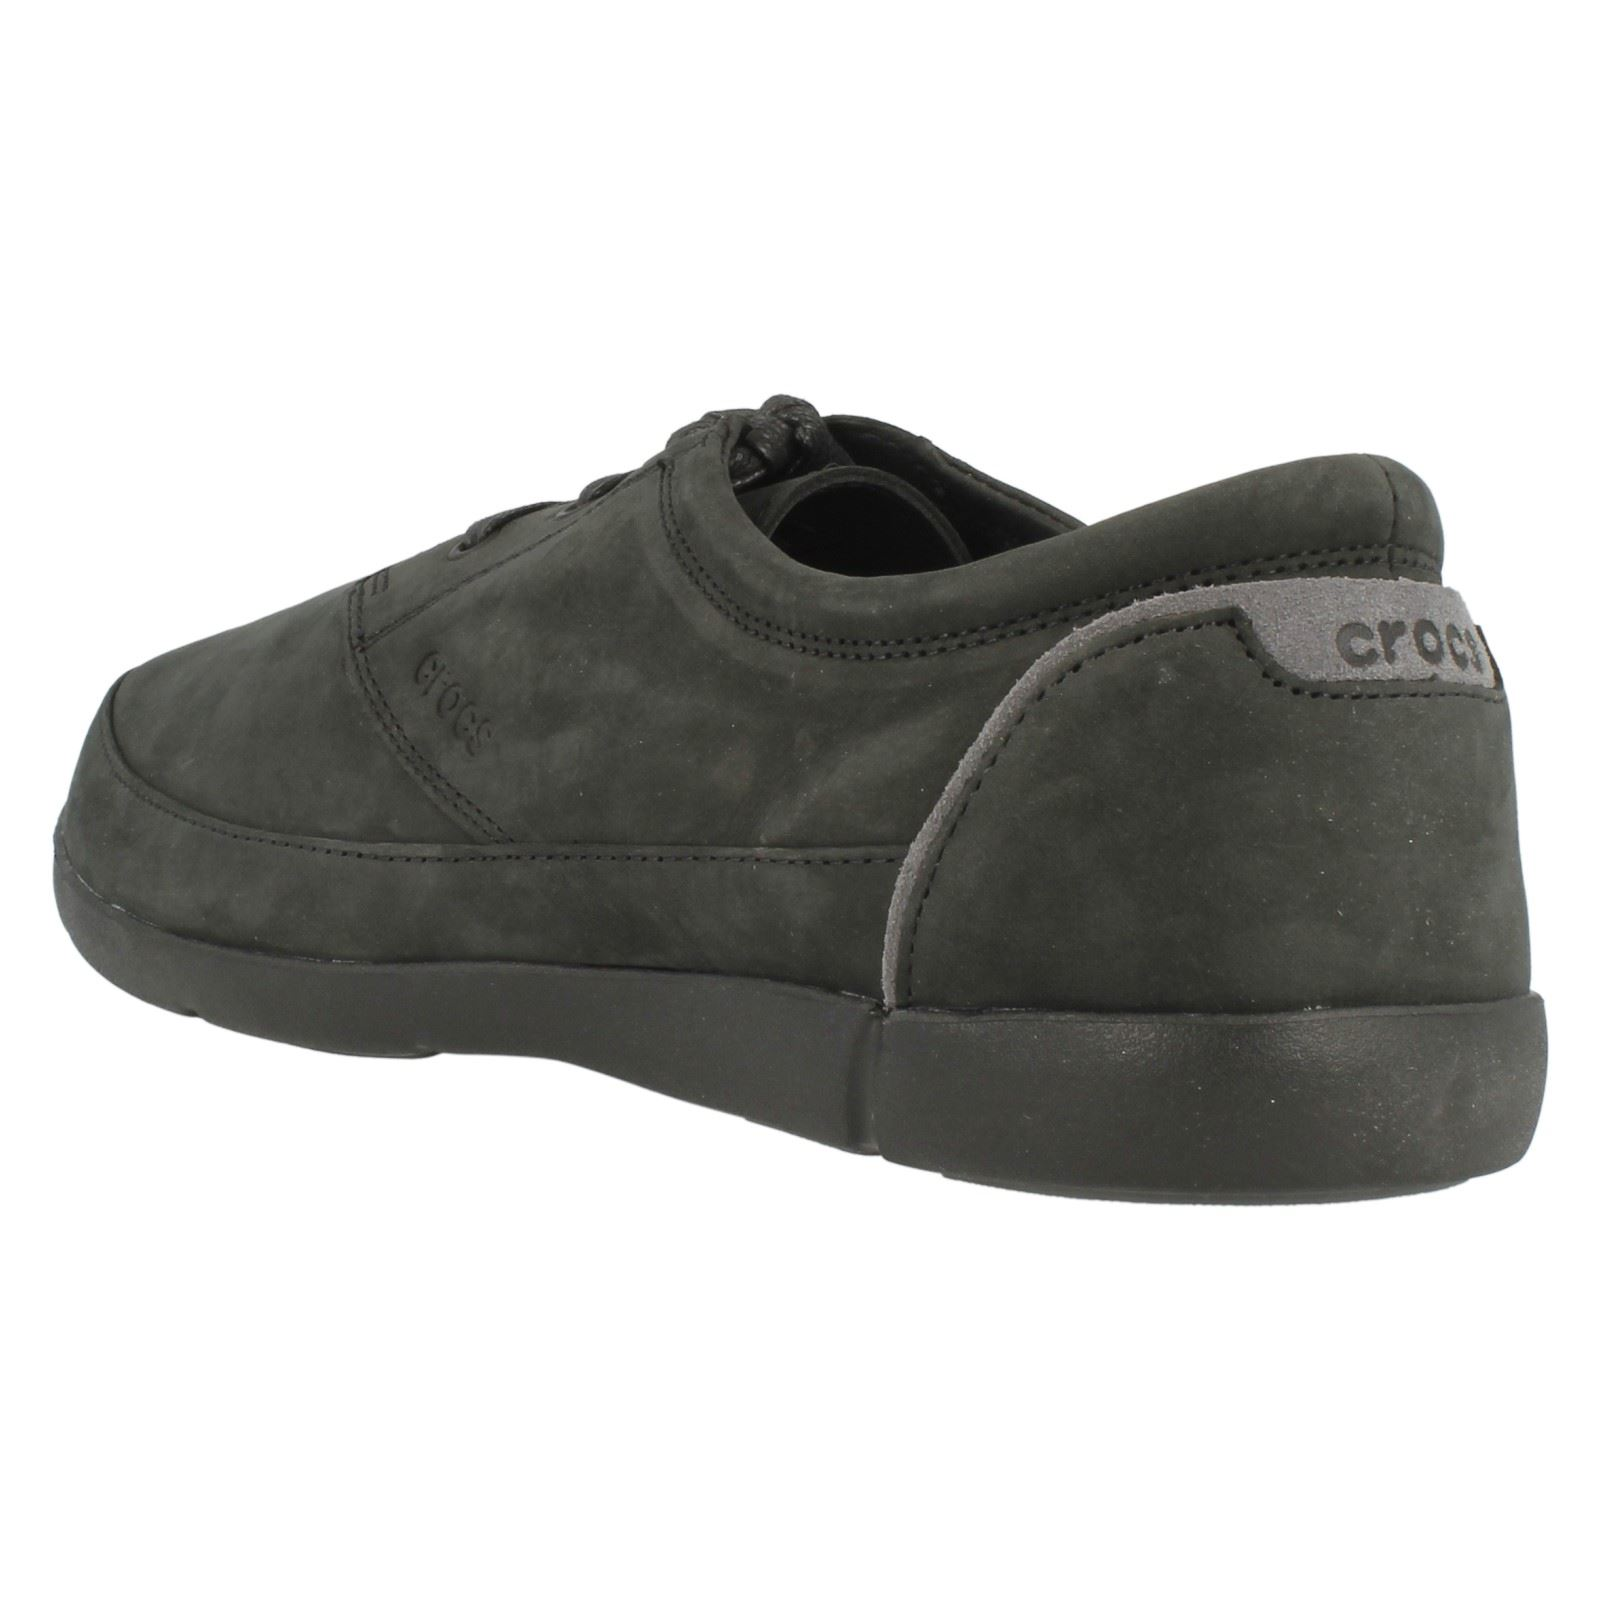 Mens Crocs Shoes Ellicott